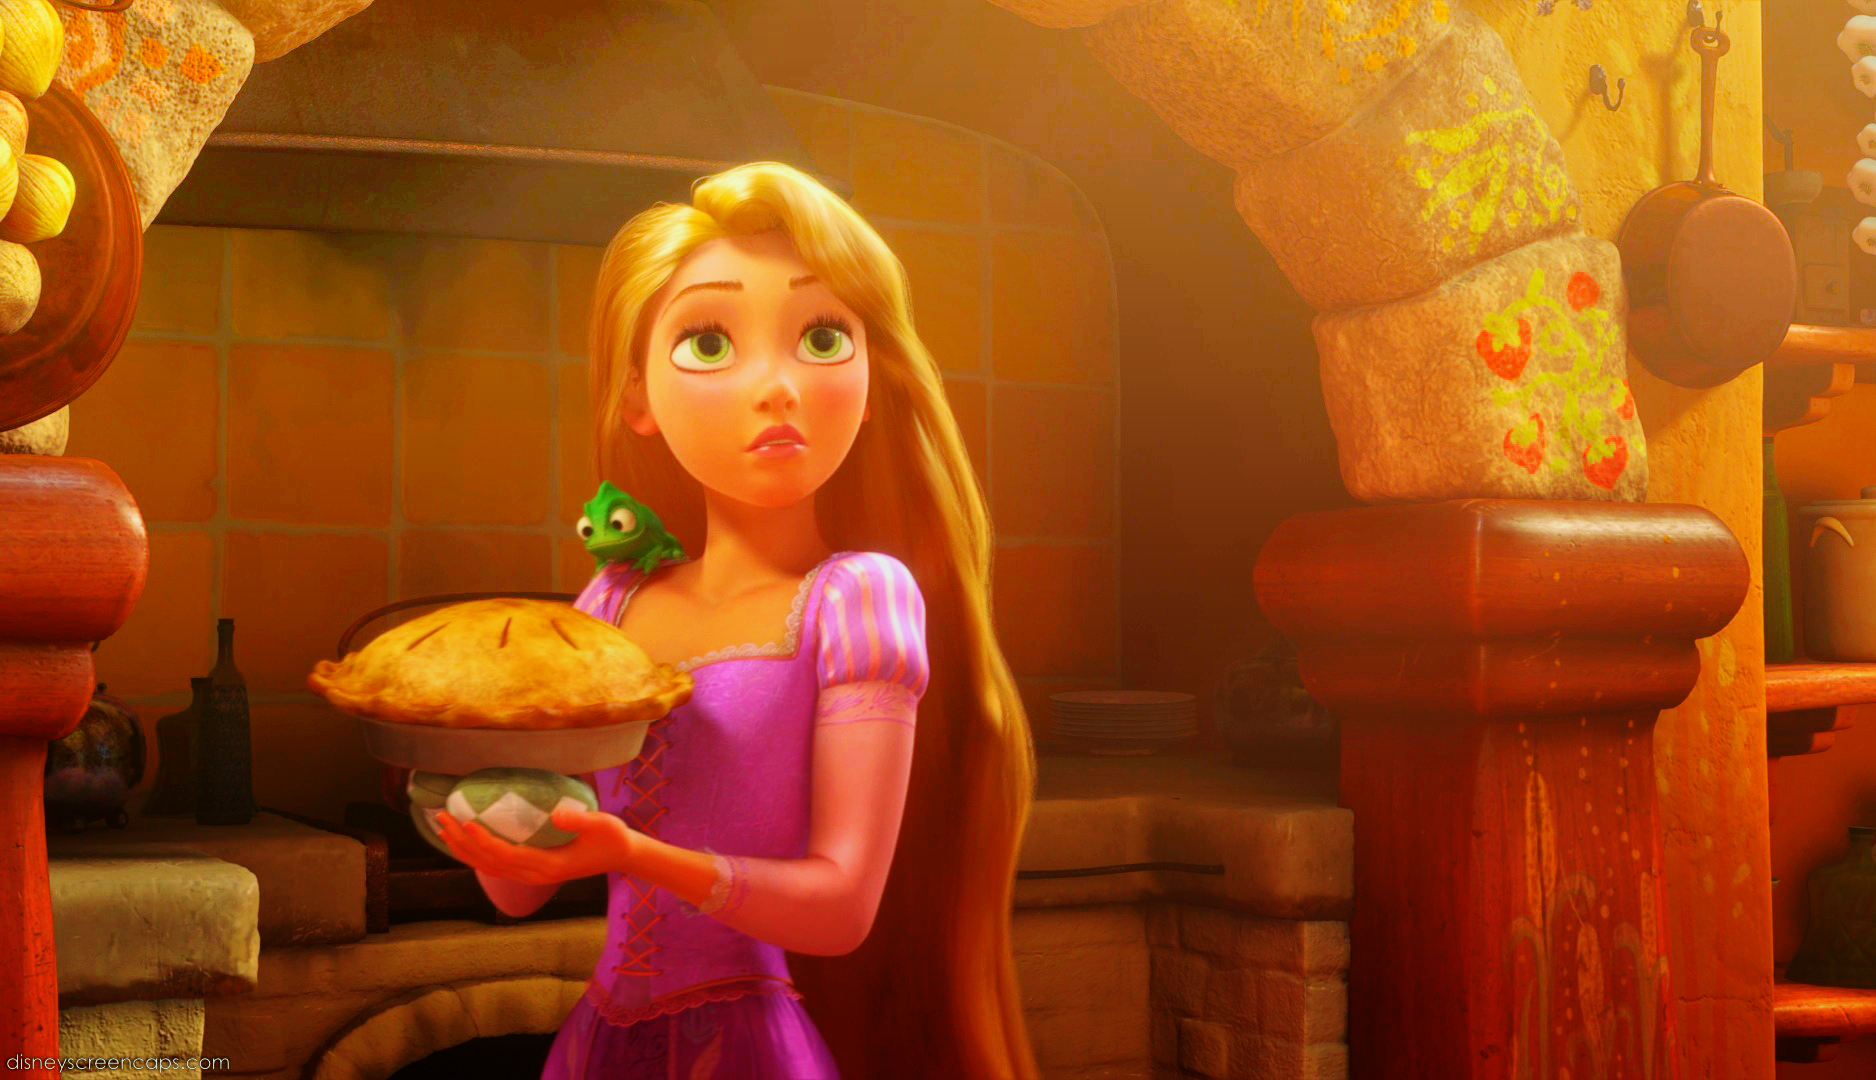 This Is The Rotten Tomatoes Rankings Of The Disney Princess Movies (including Frozen & Brave